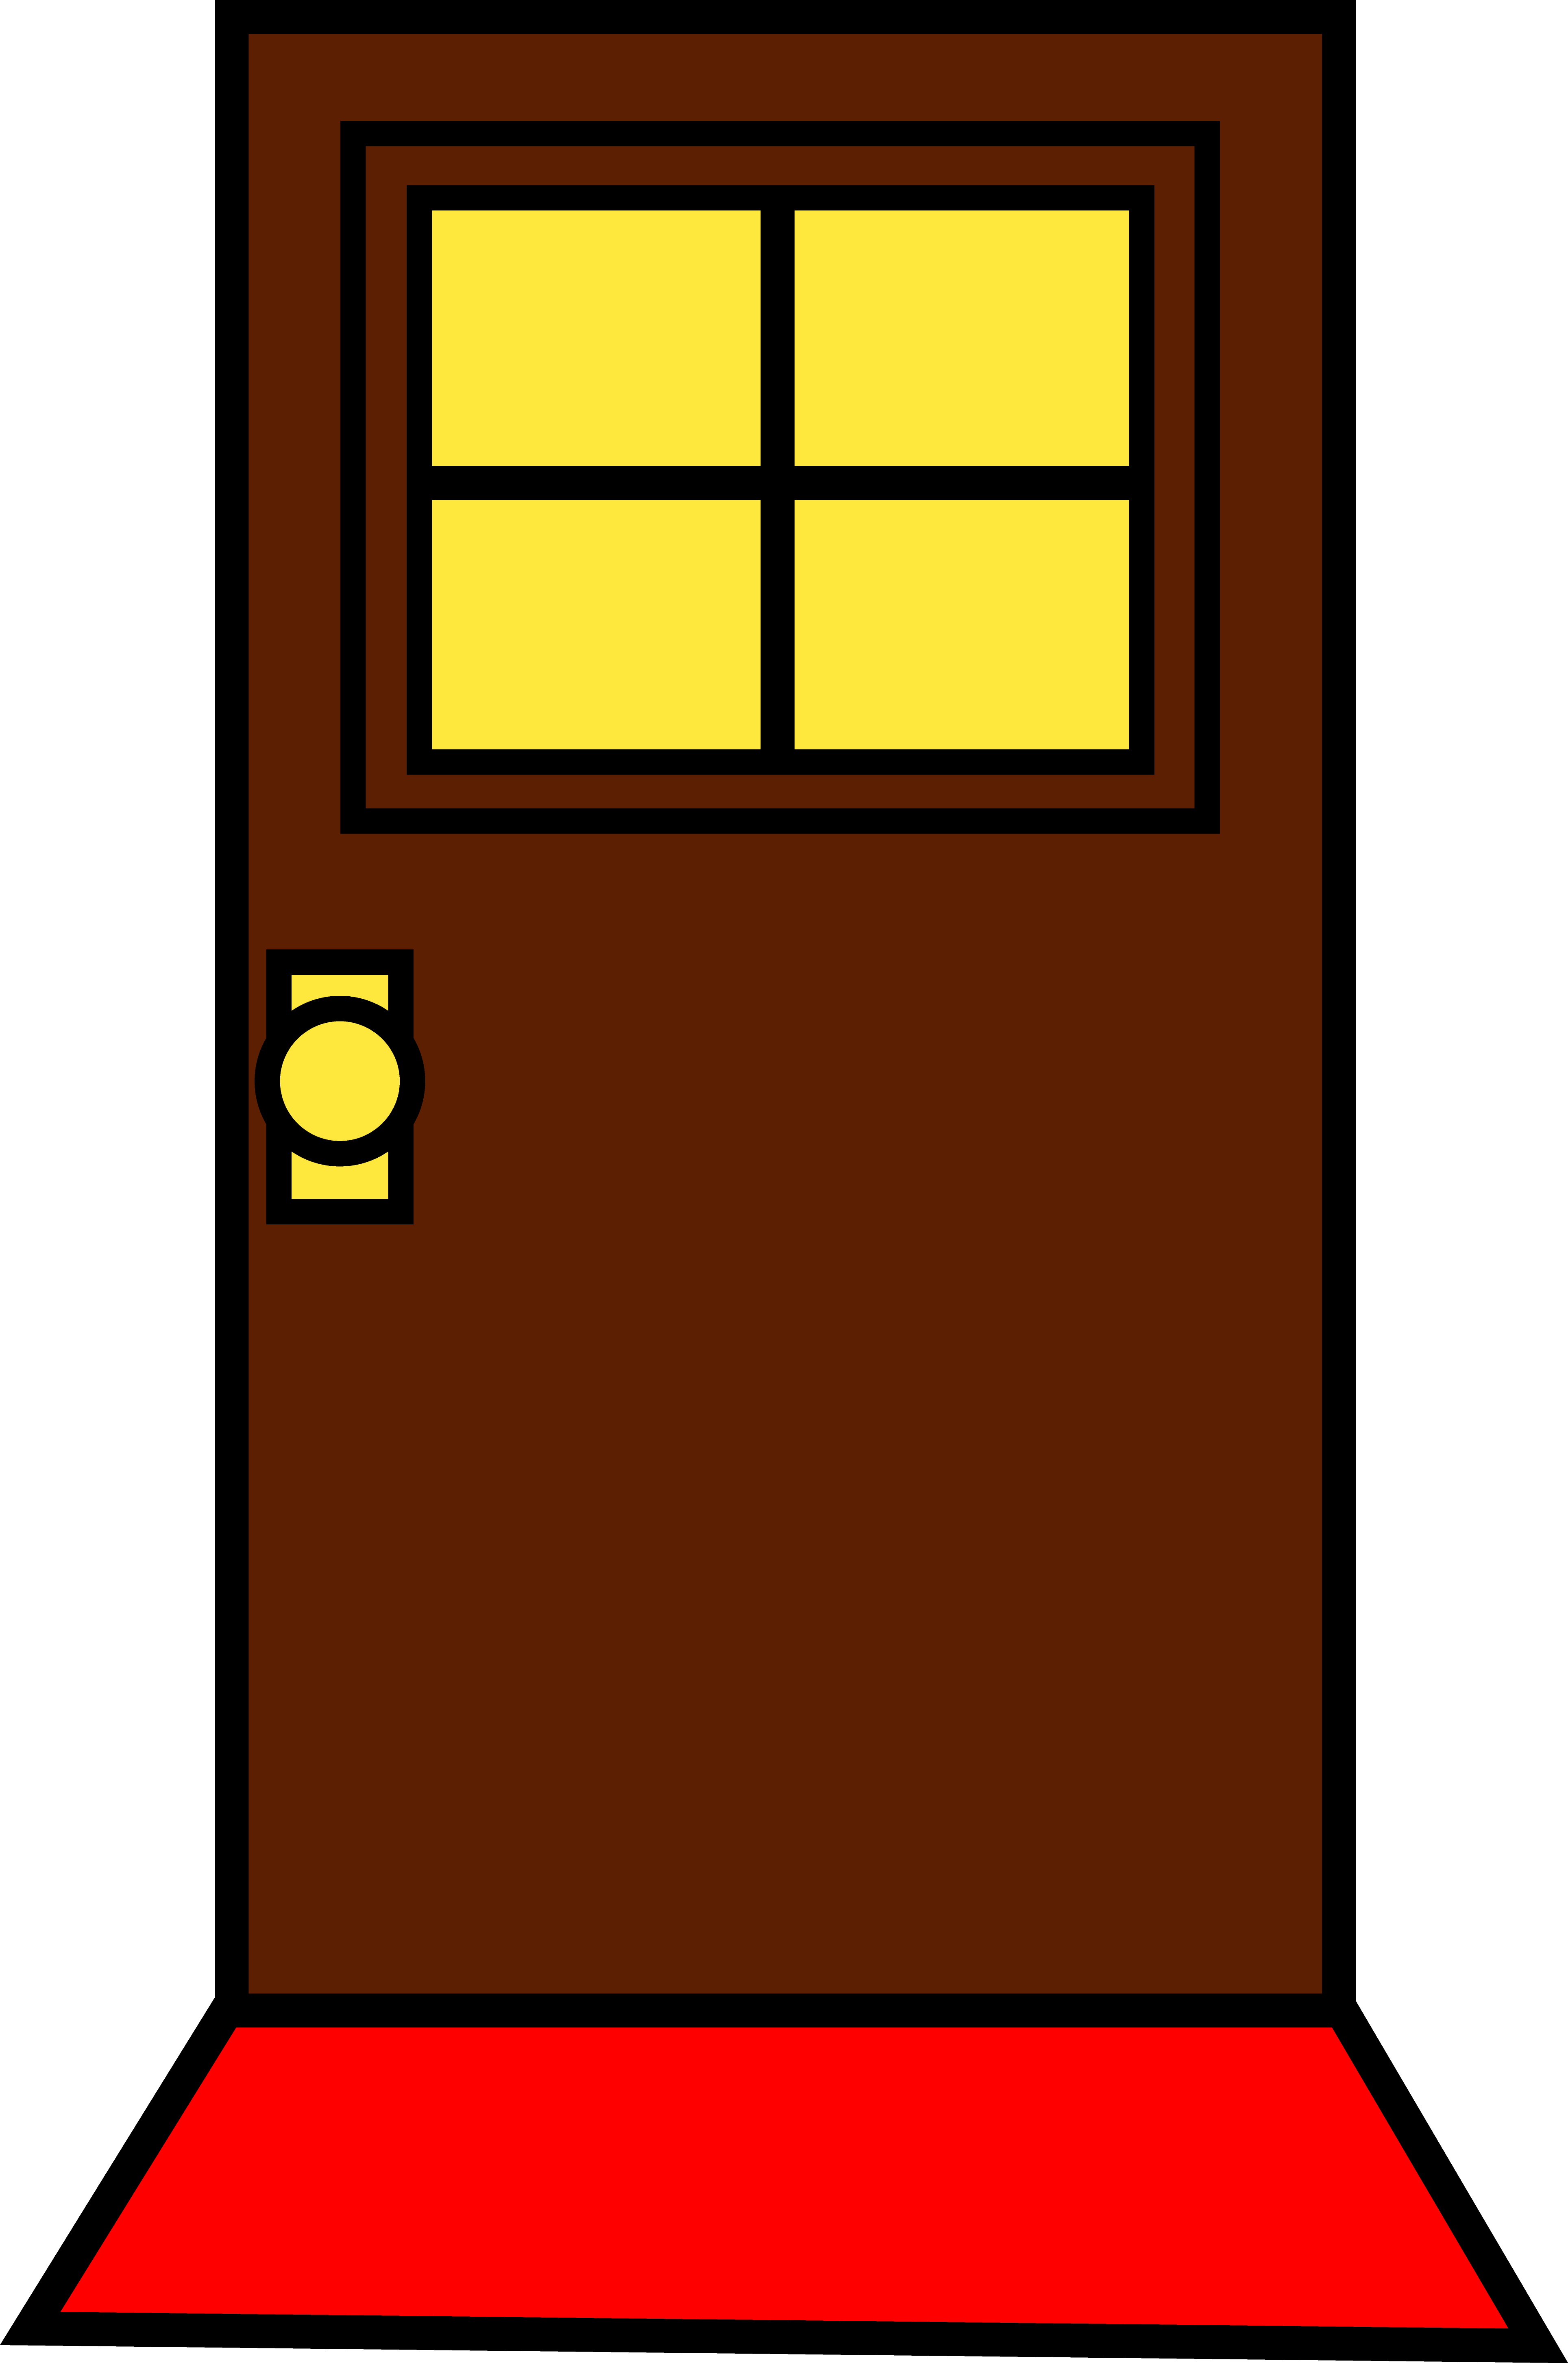 Door clipart. House